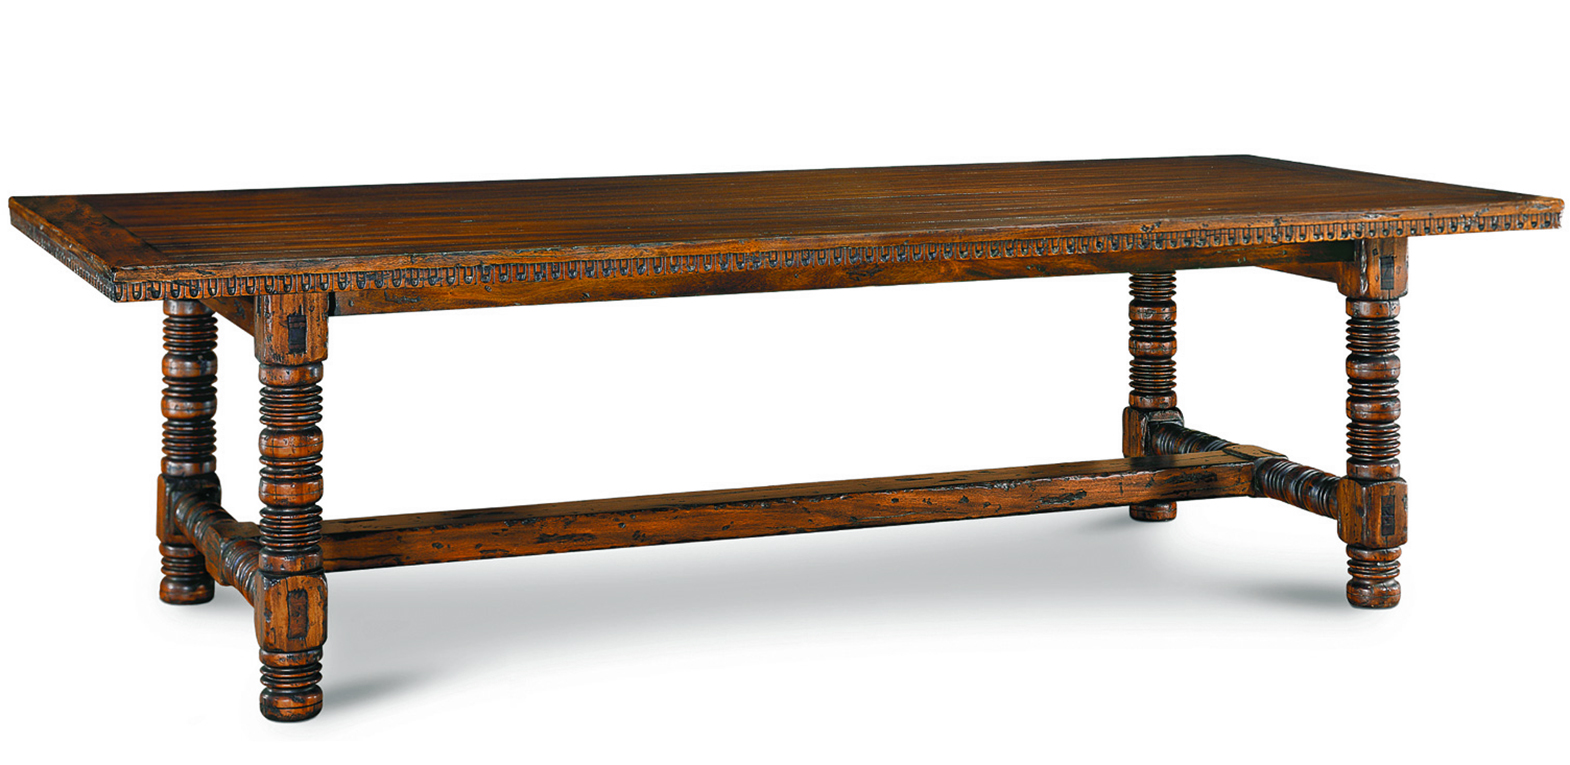 XVII TH CENTURY DINING TABLE